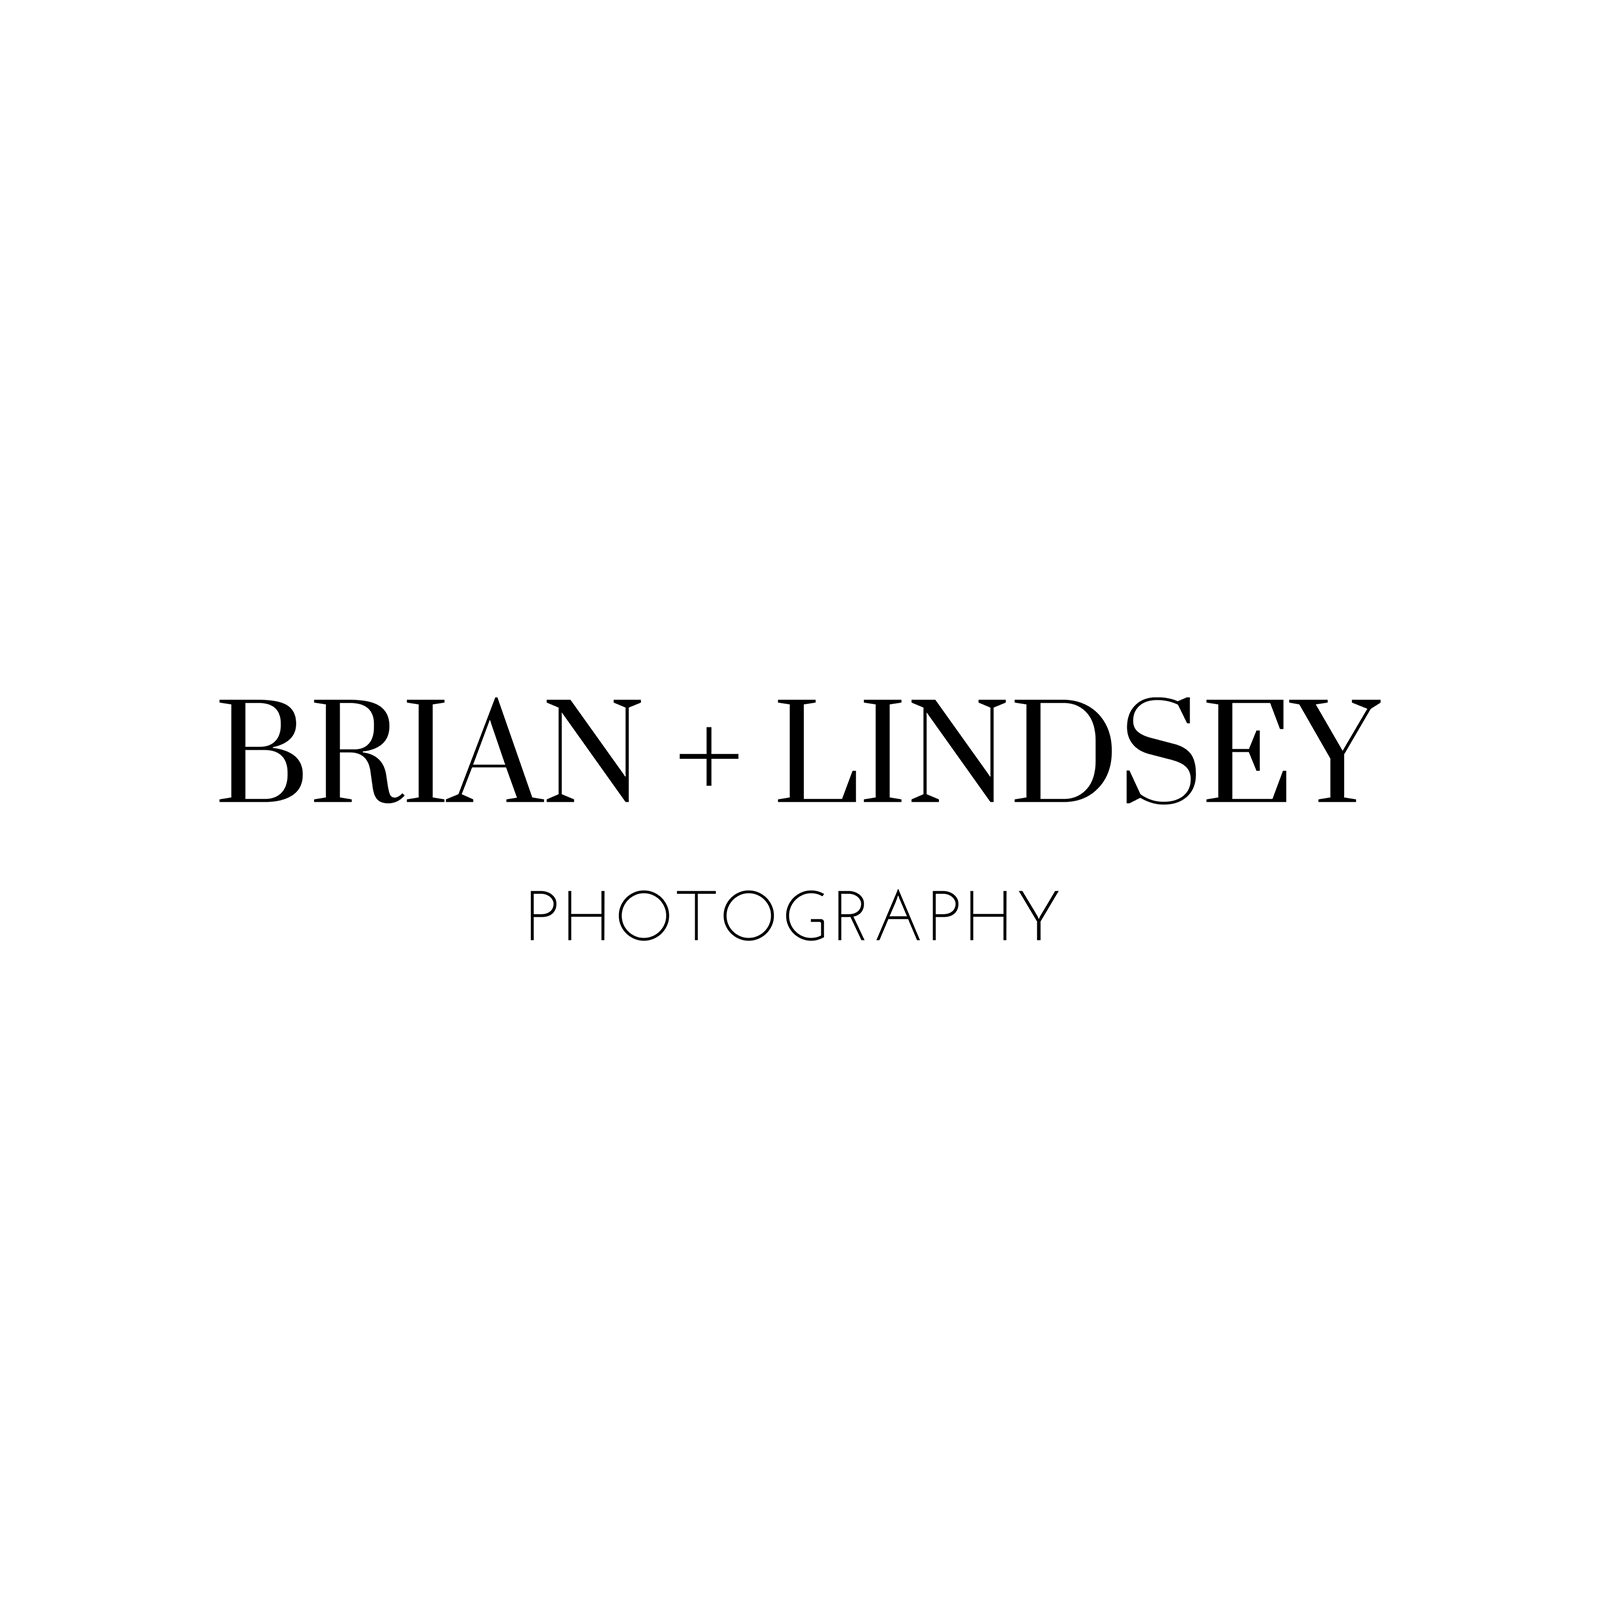 Brian + Lindsey Photography